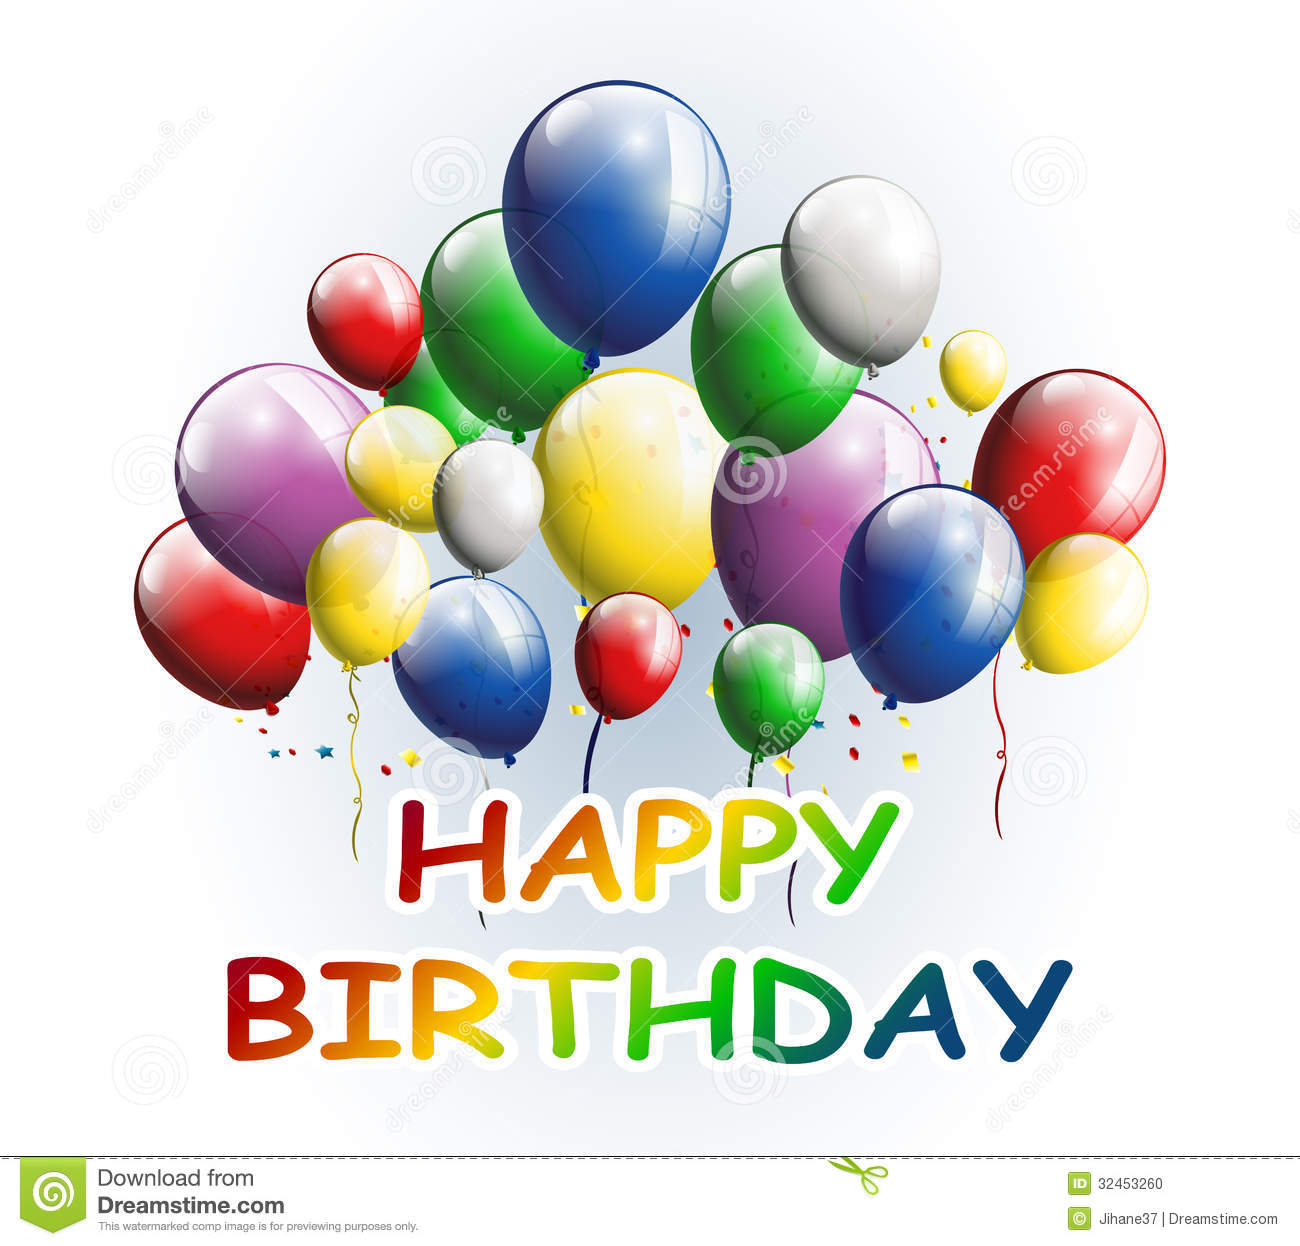 Happy Birthday With Balloons Background For You Design